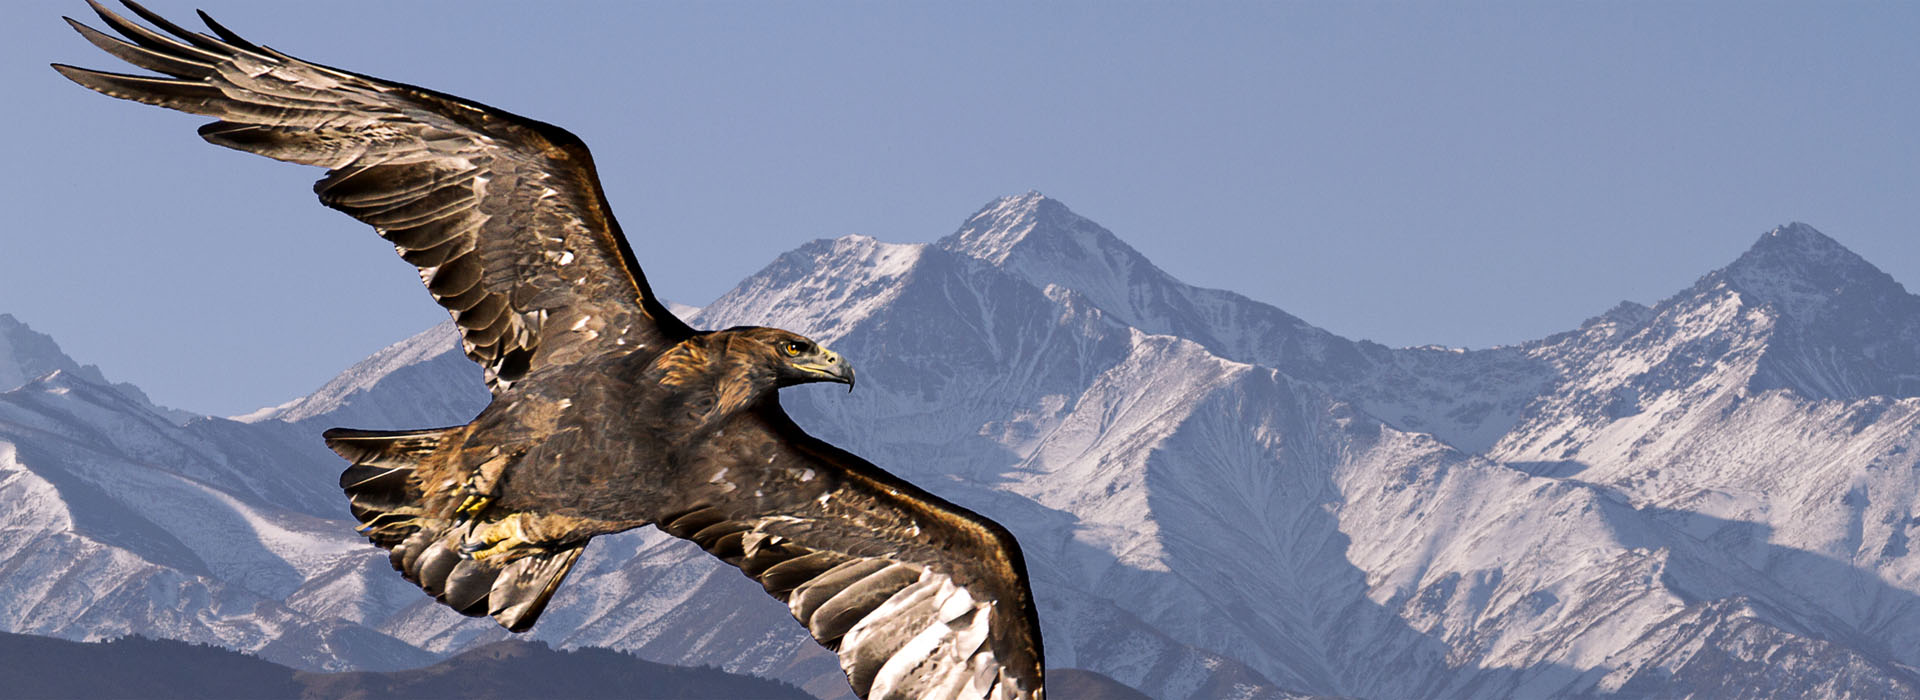 Golden Eagle Kyrgyzstan Tour